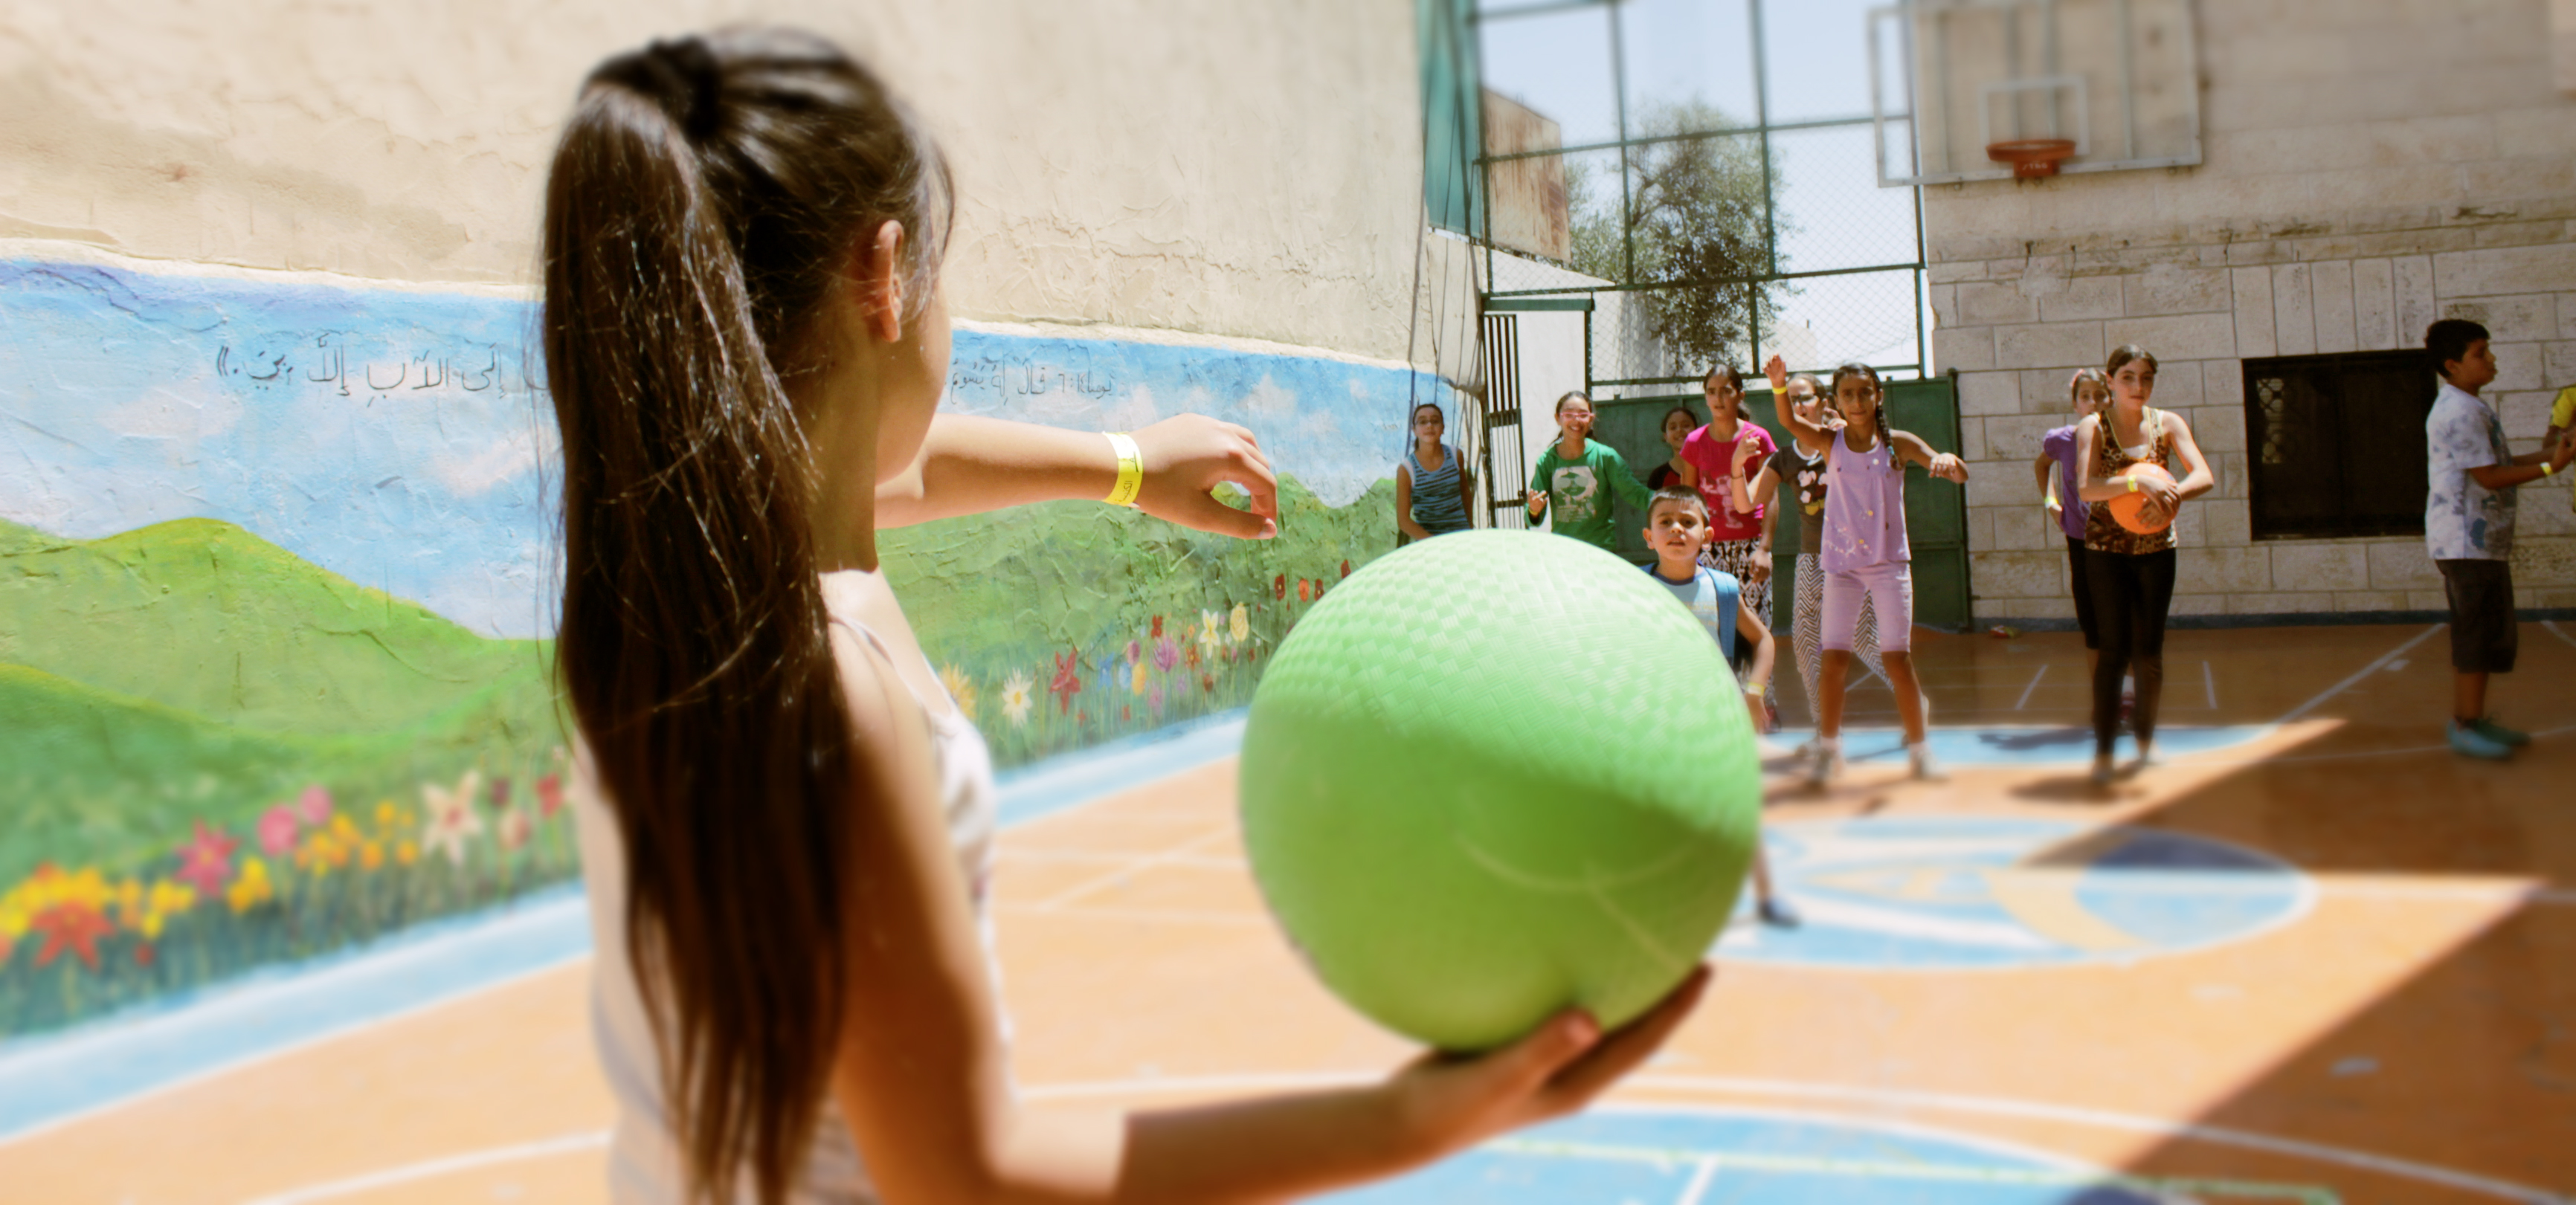 A young girl winding up to throw a green dodge ball to a group of kids.